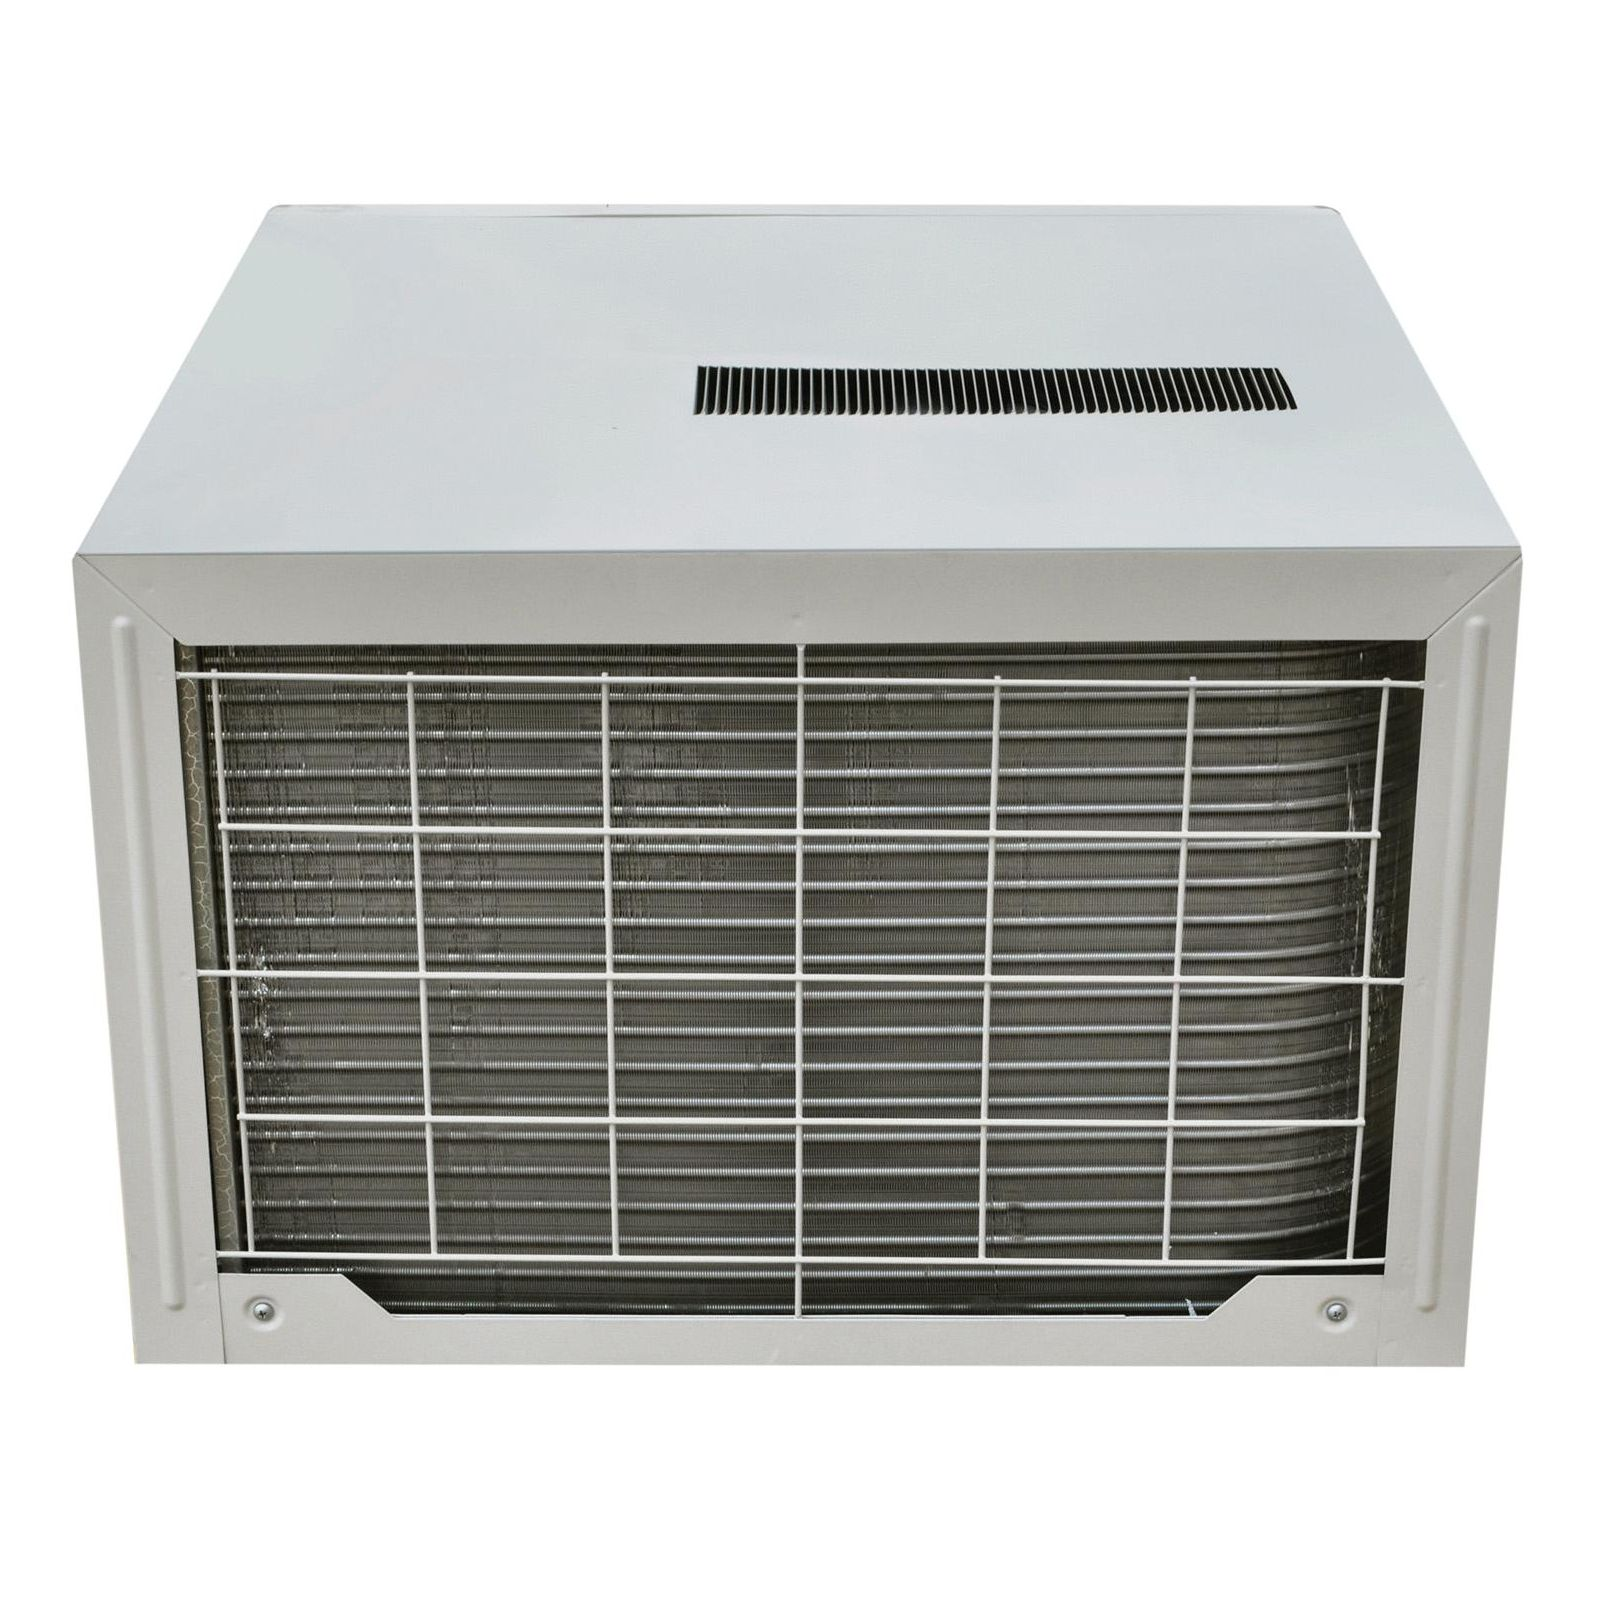 Air Cooling Units : Prem i air eh window unit conditioner cooling only